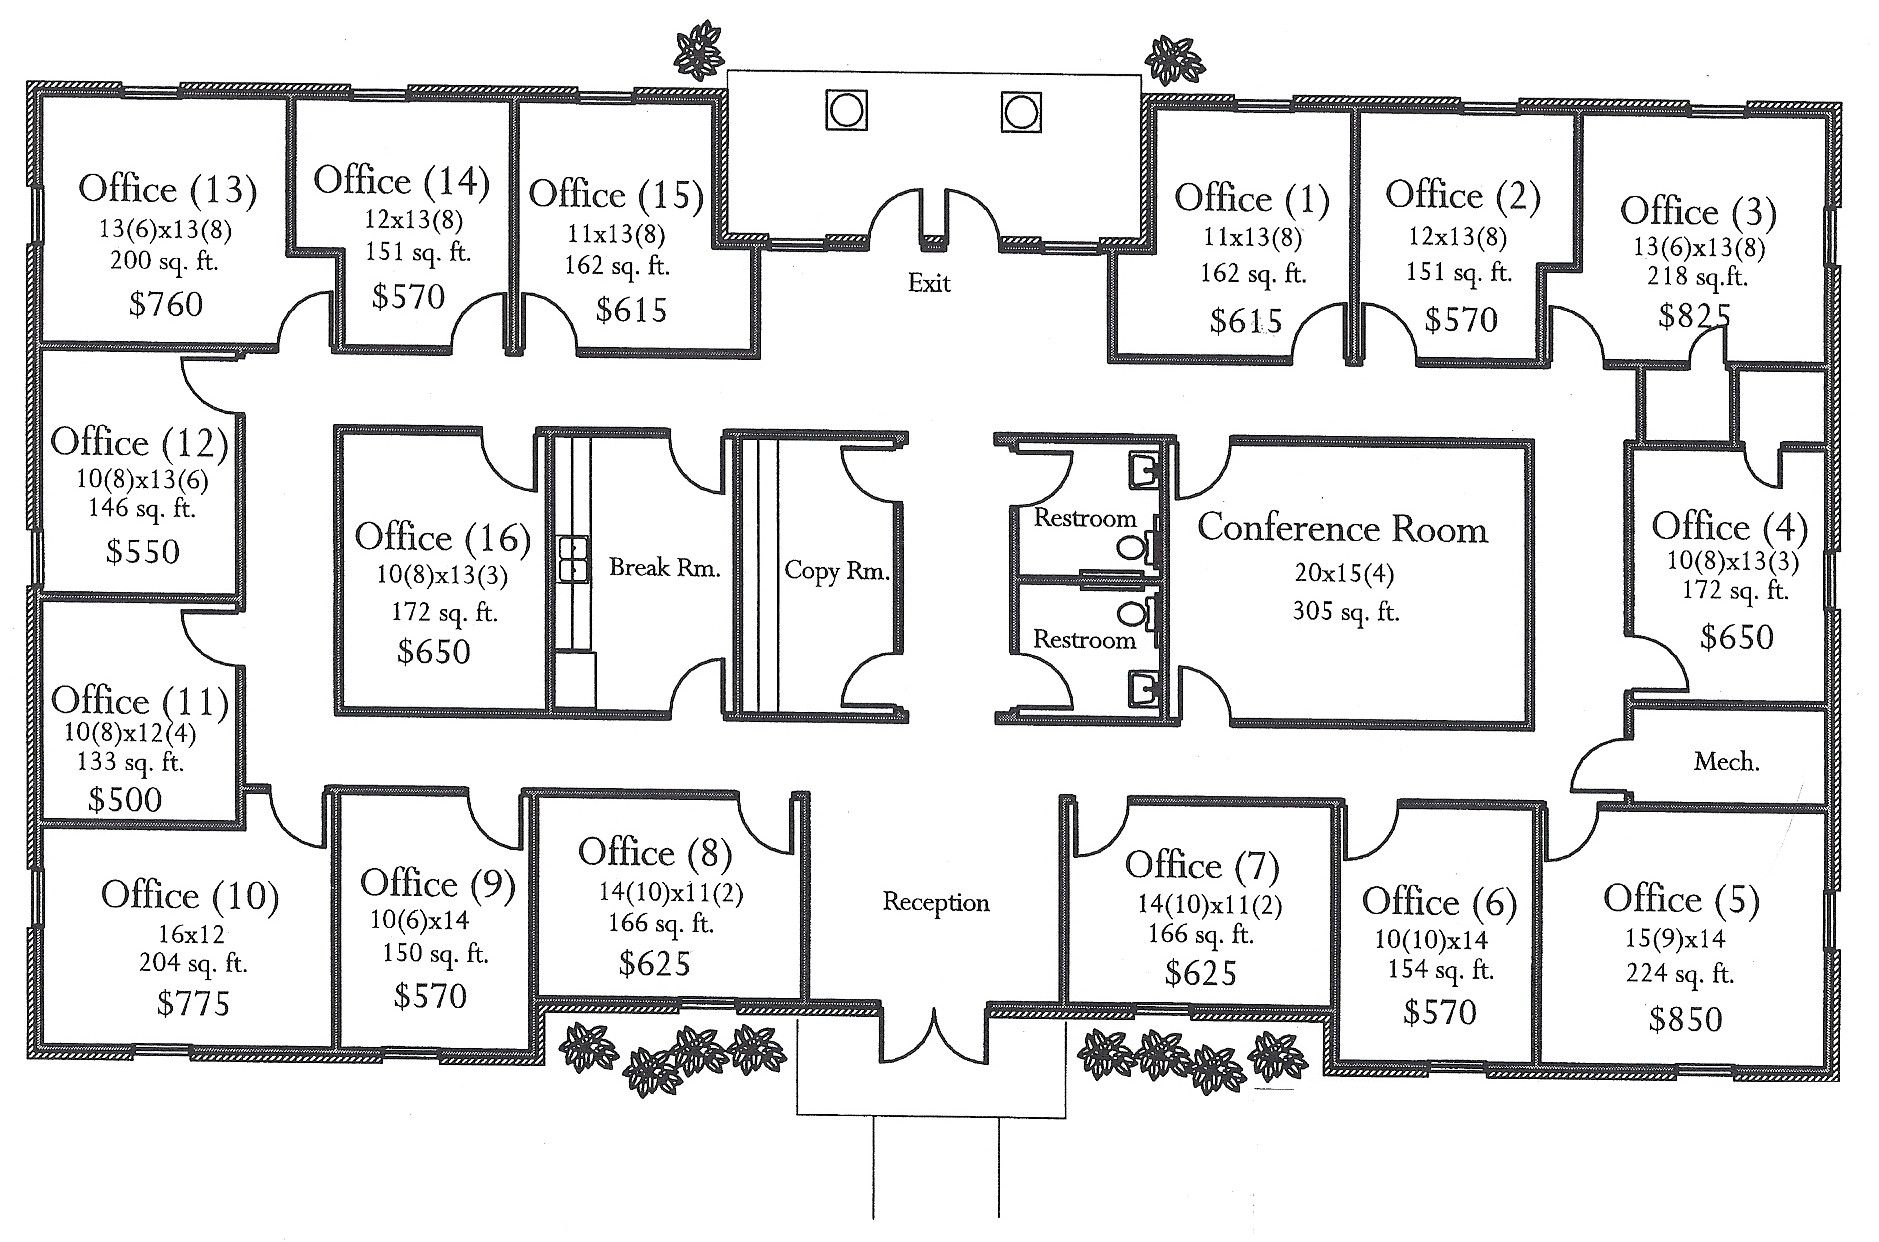 Floor plan for small medical office evstudio architect for Small commercial building design plans